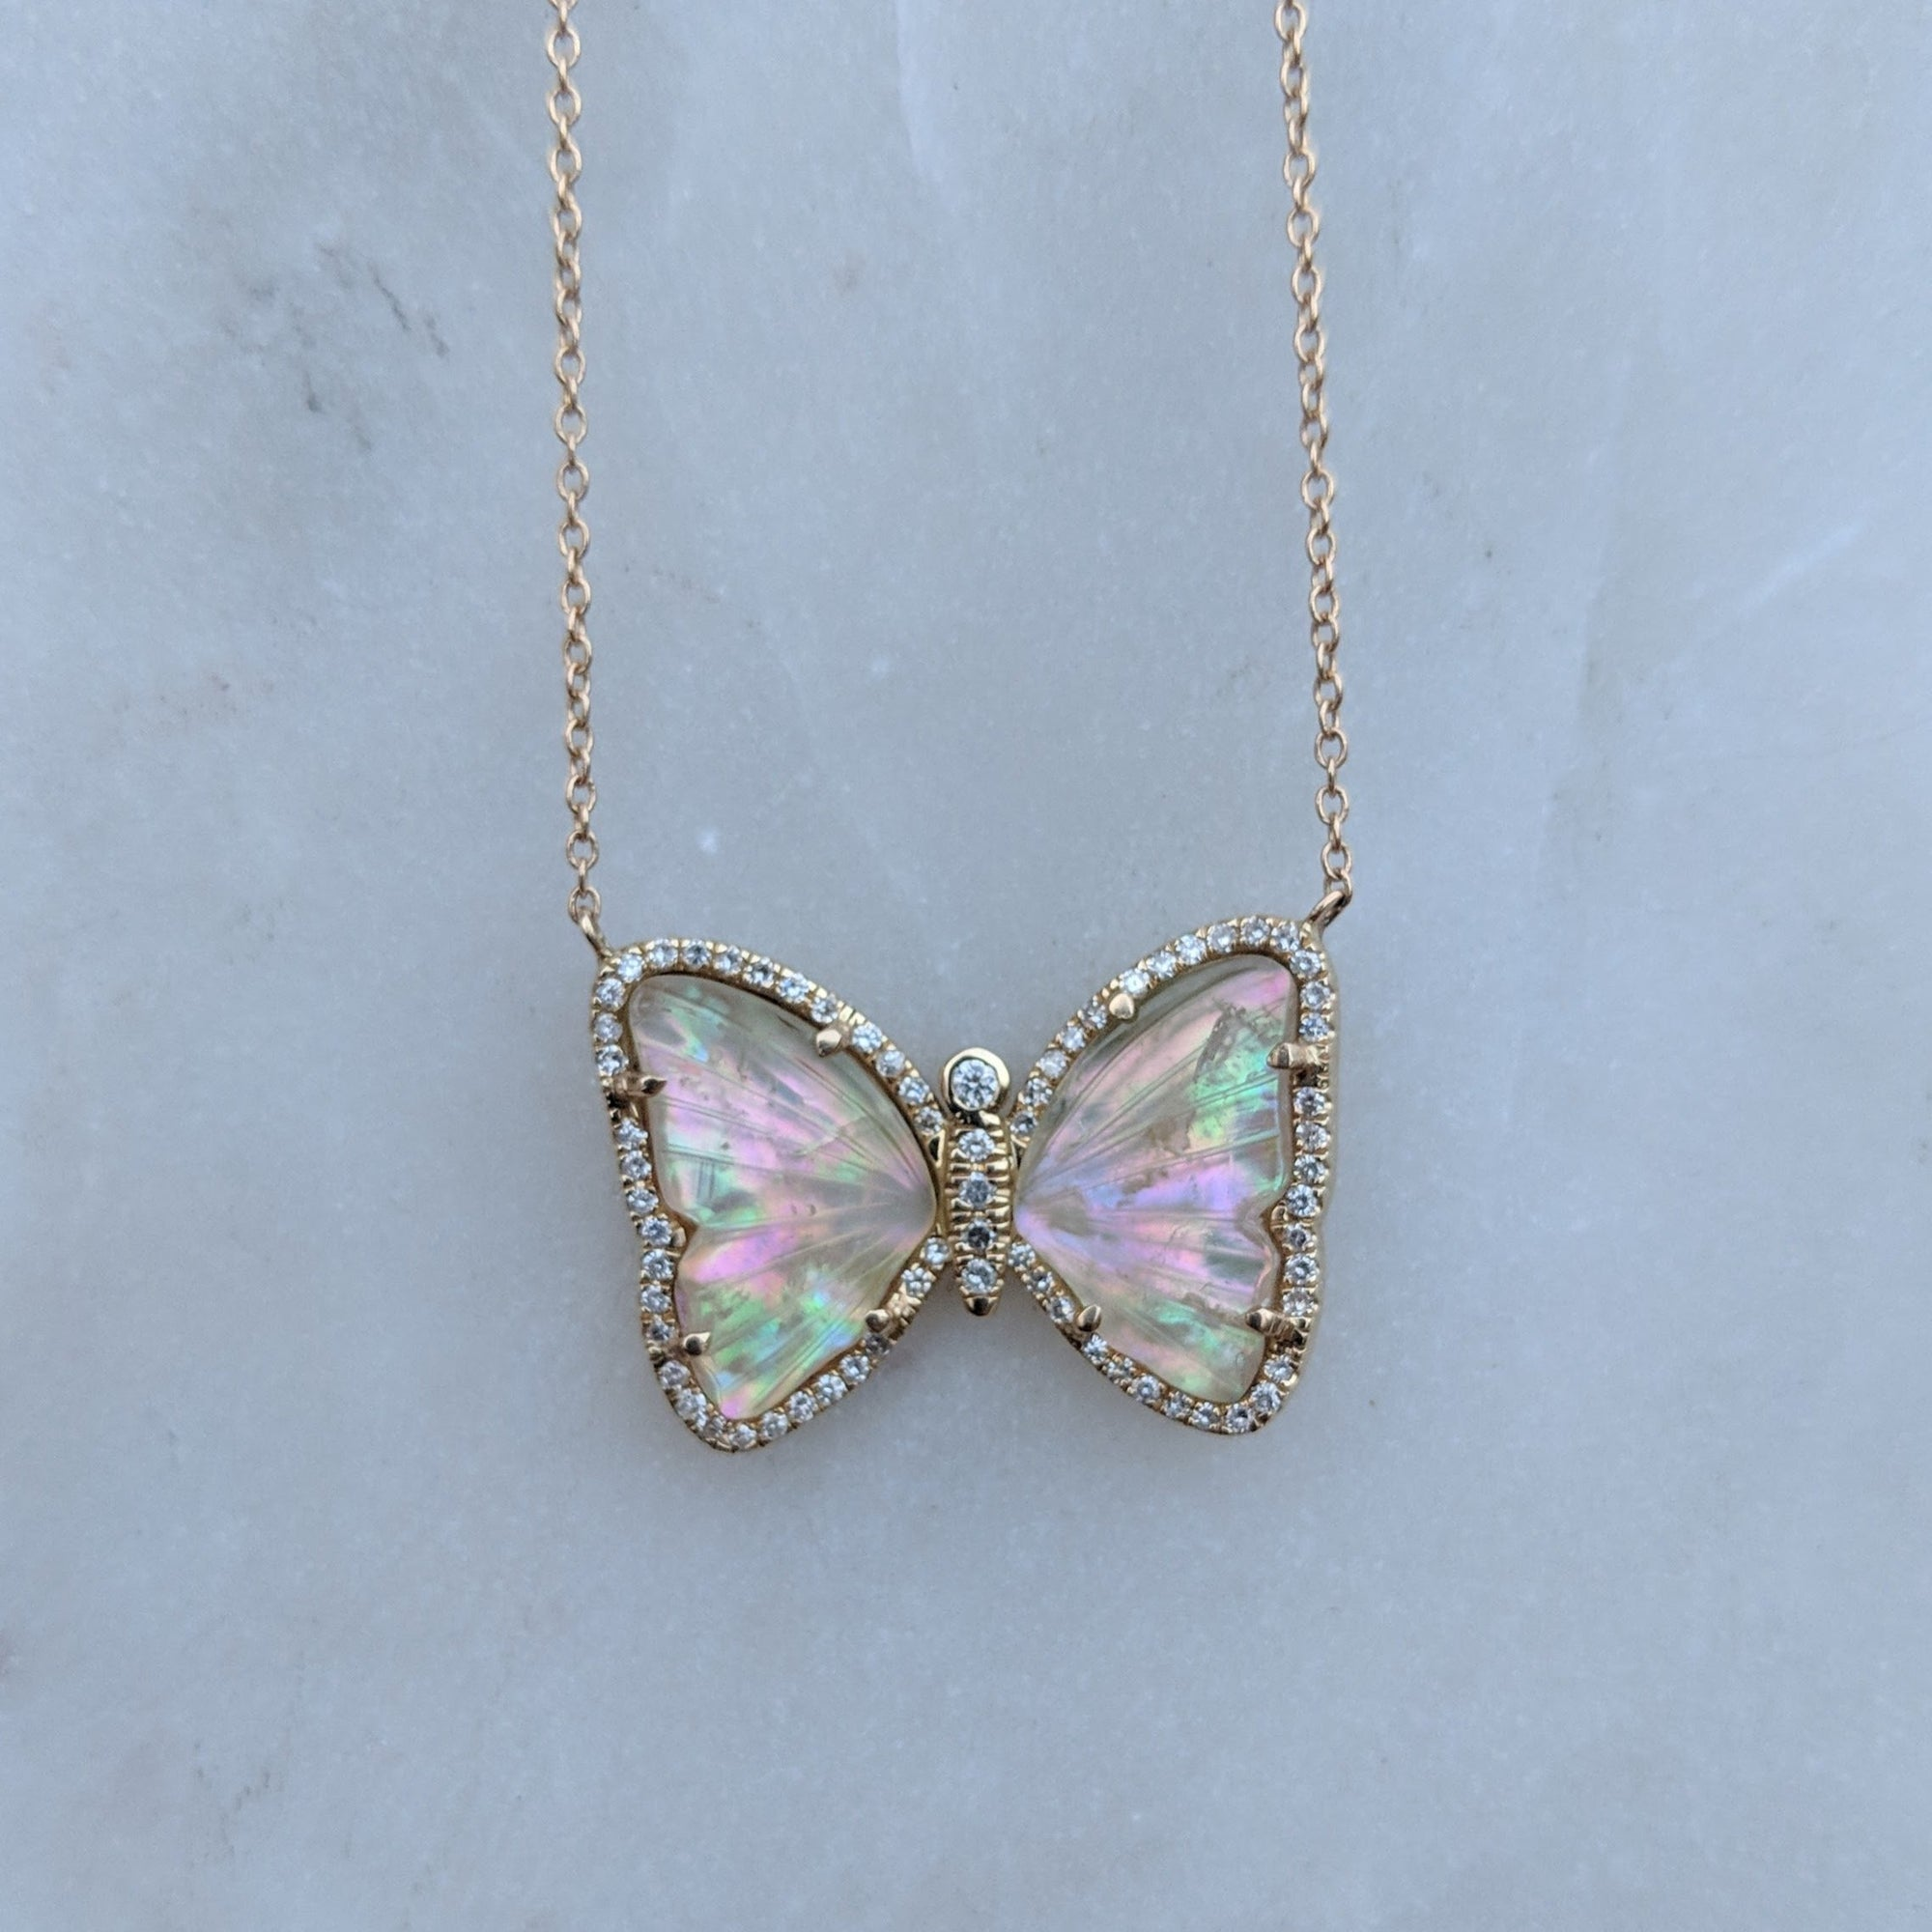 Butterfly Necklace With Tourmaline and Pearl